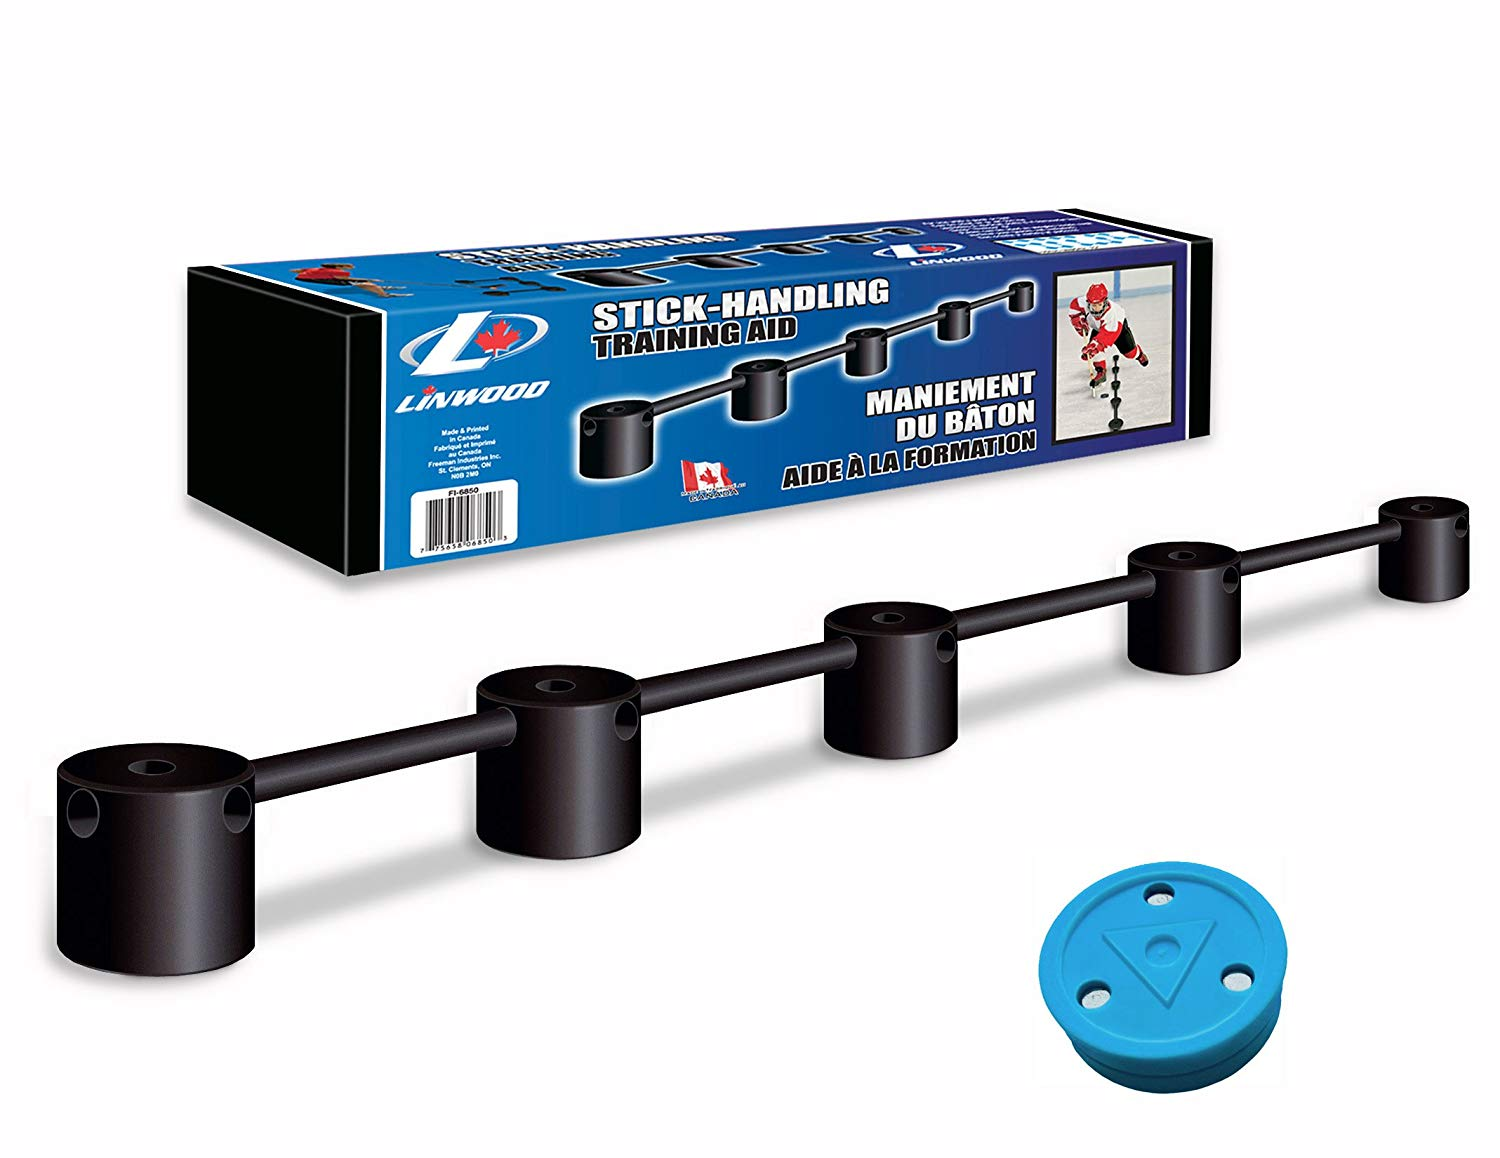 Stick-handling Training Aid